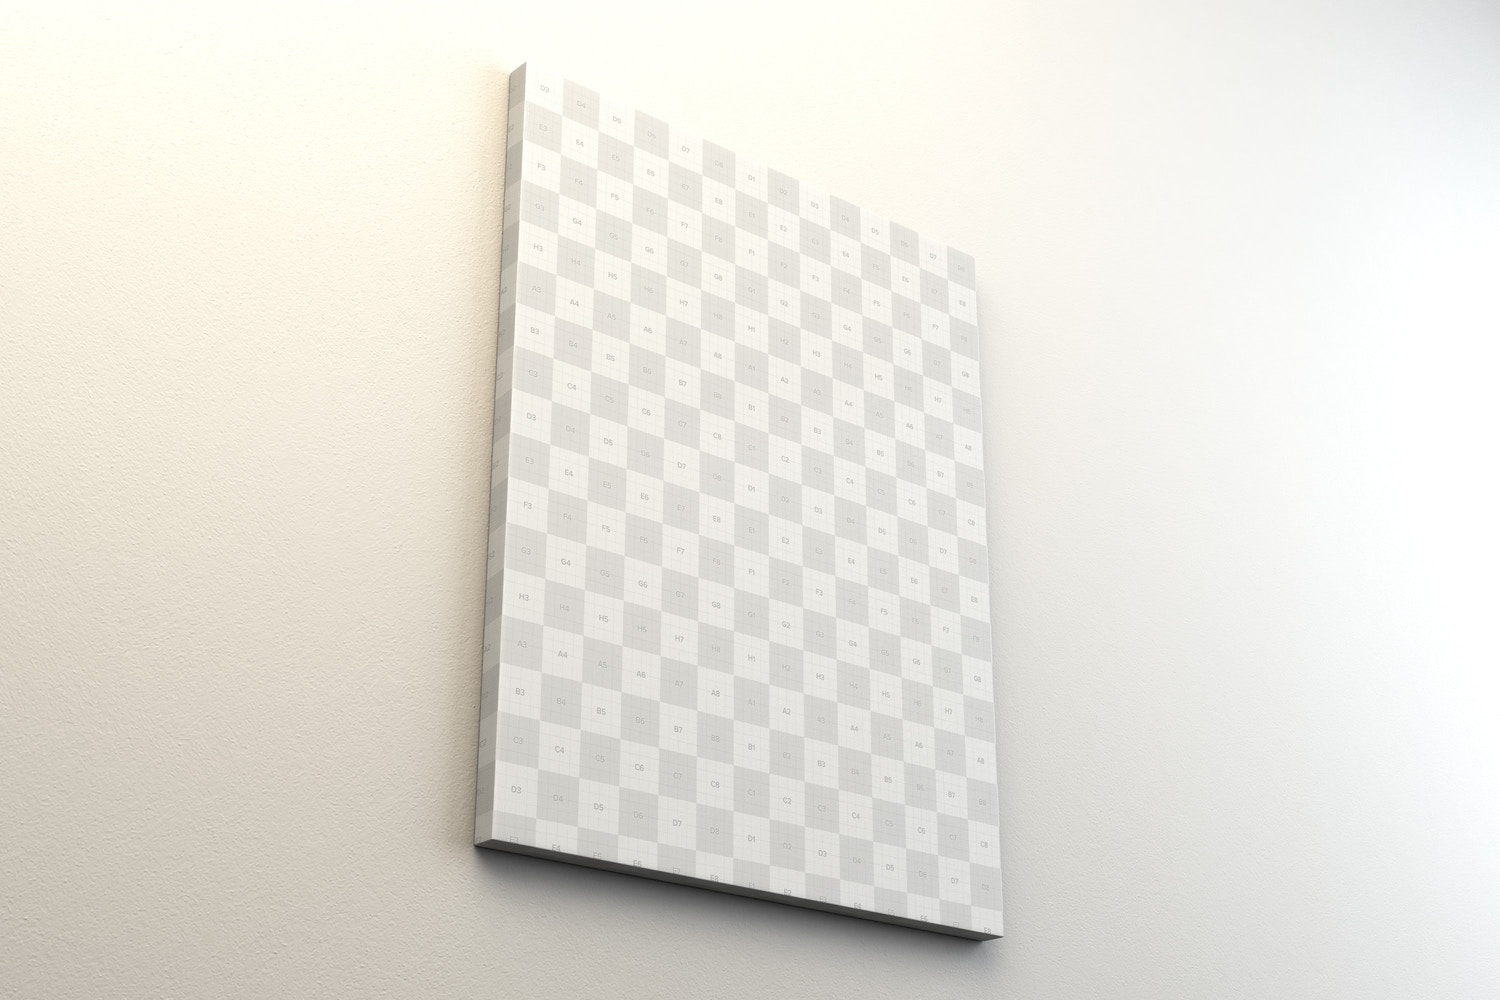 Portrait Canvas Frame Mockup Hanging on Wall in Perspective - Smart Objects